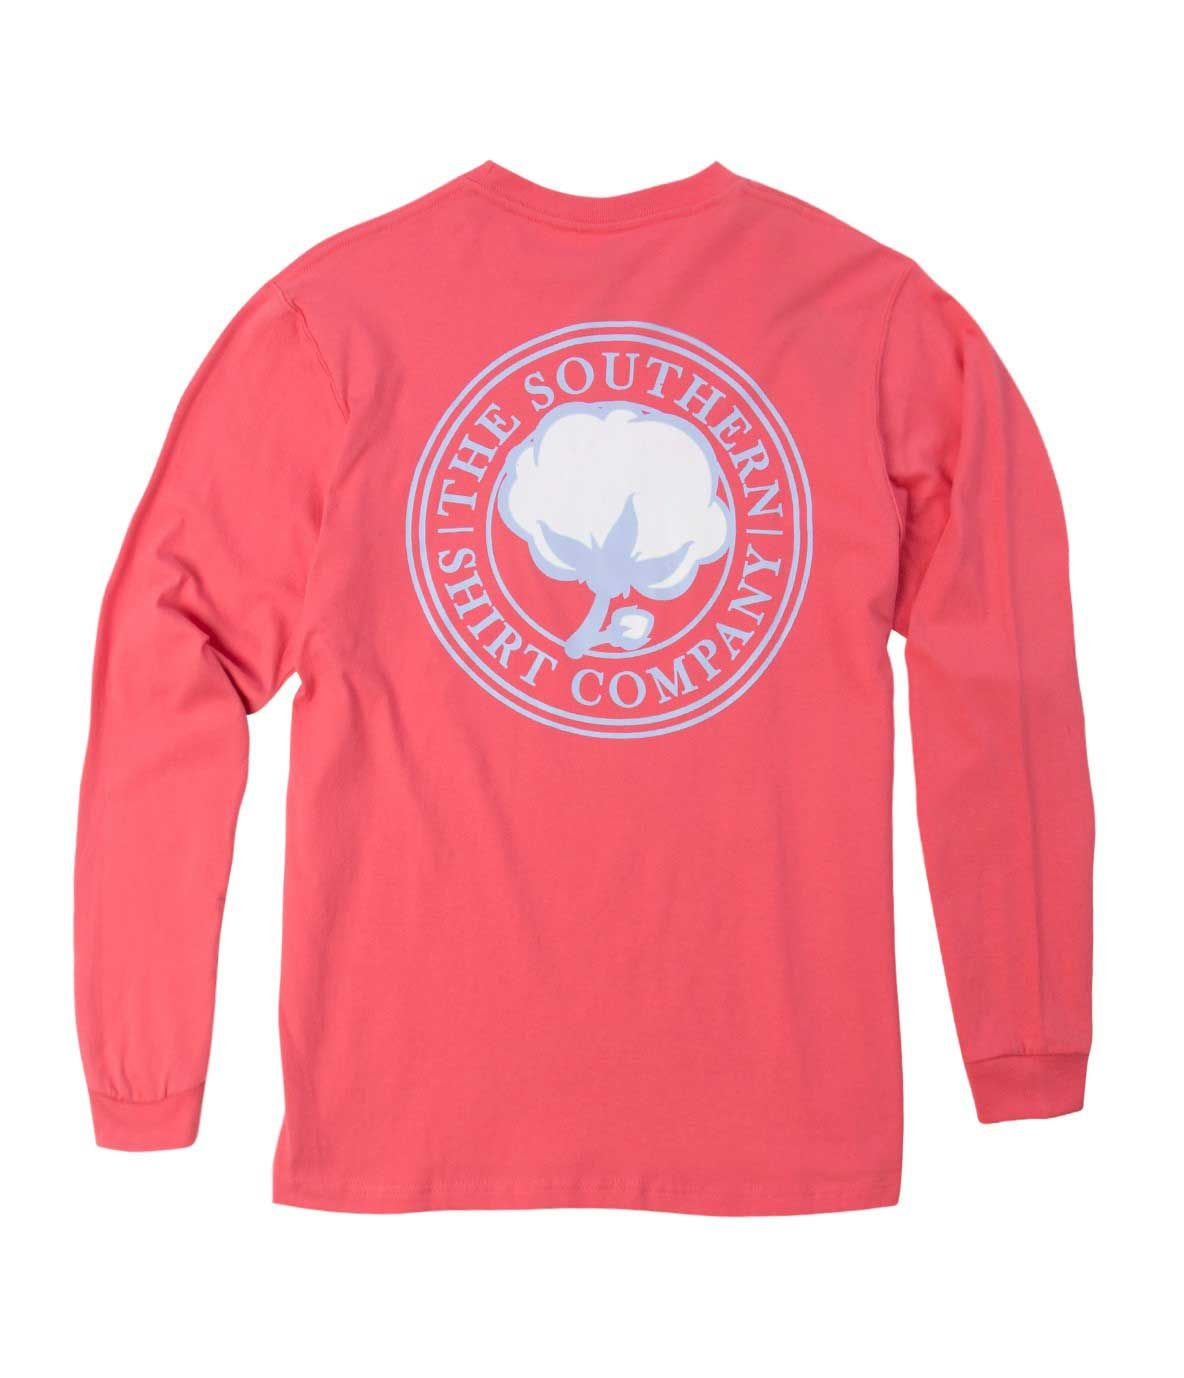 White t shirt company - Southern Shirt Company Signature Logo Long Sleeve T Shirt In Coral